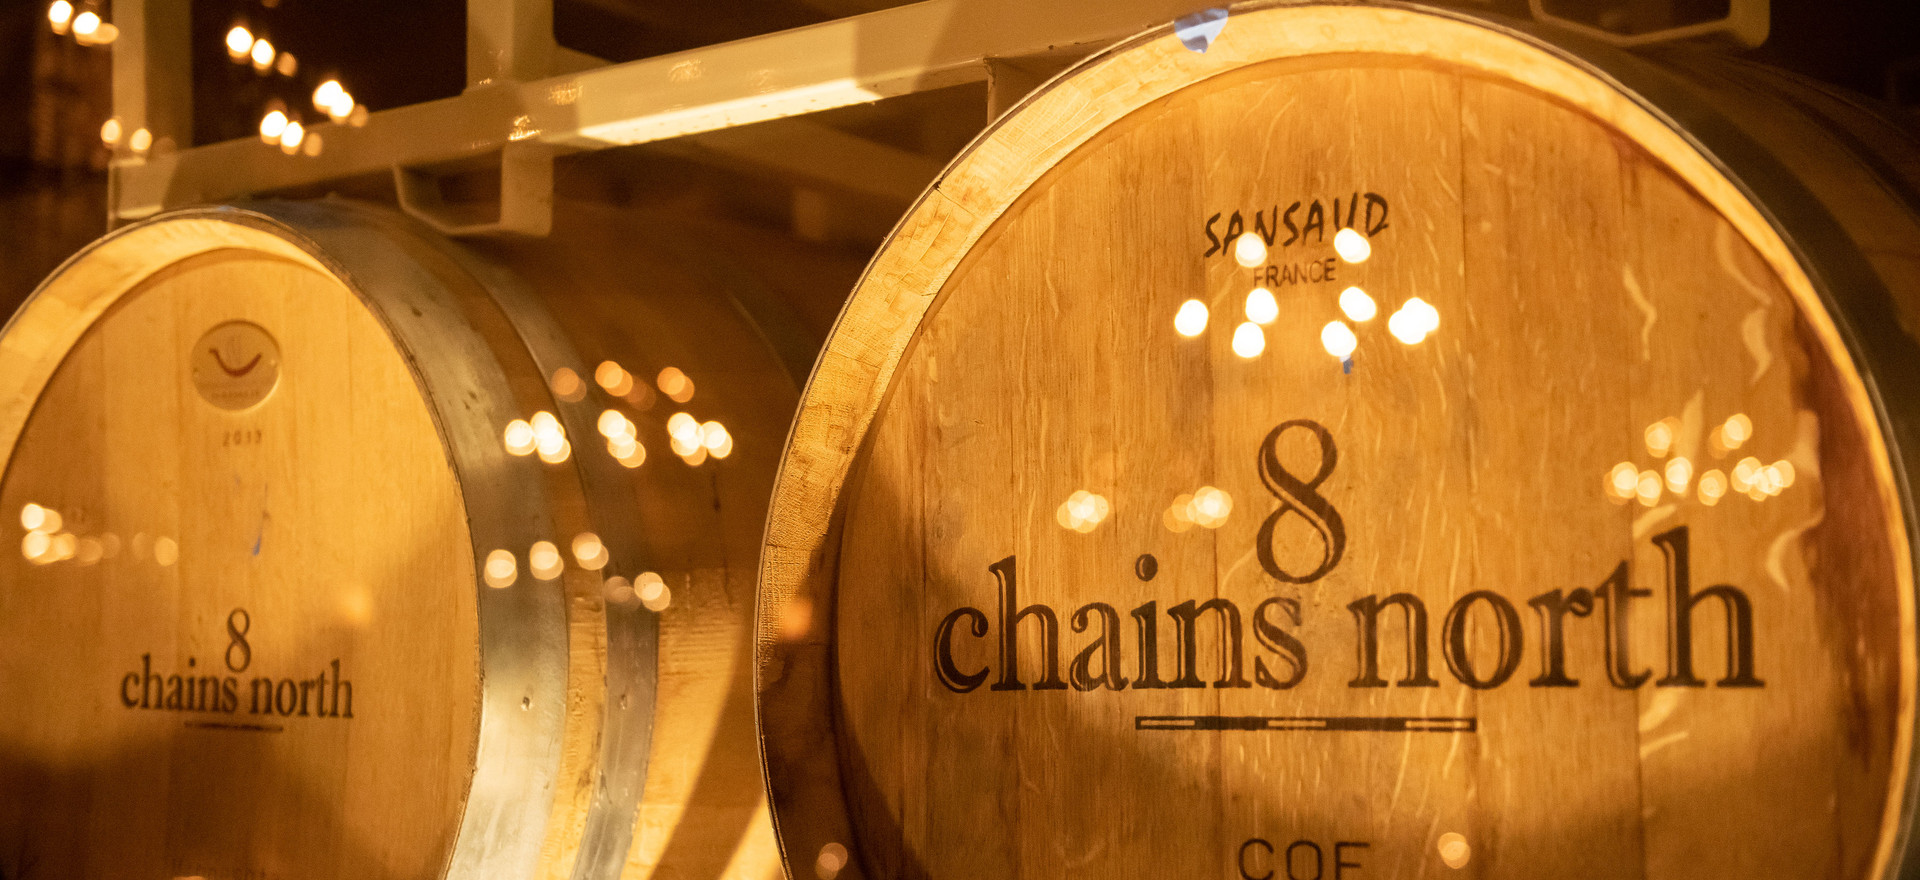 8 Chains barrels